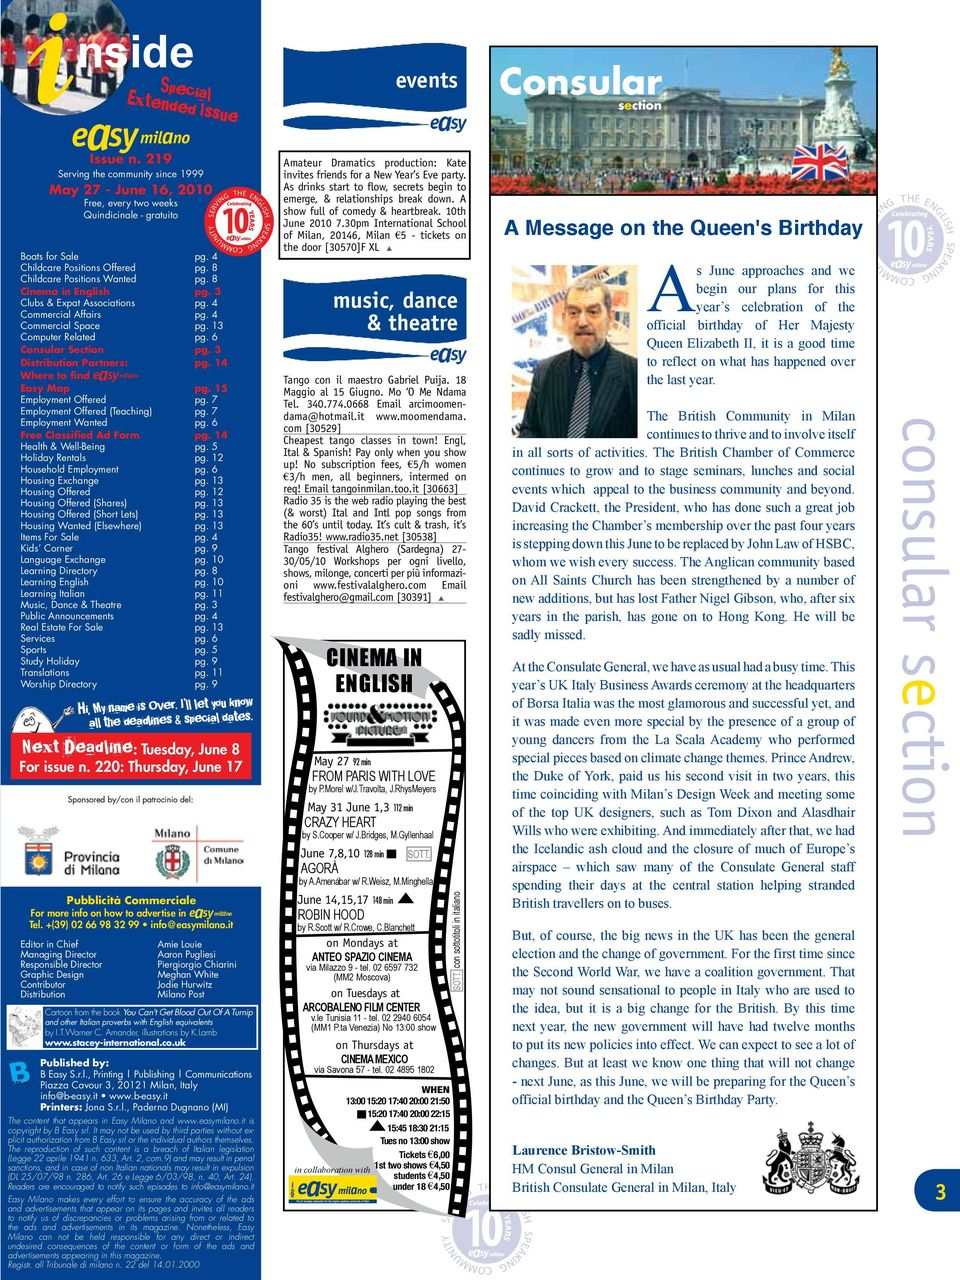 8 Cinema in English pg. 3 Clubs & Expat Associations pg. 4 Commercial Affairs pg. 4 Commercial Space pg. 13 Computer Related pg. 6 Consular Section pg. 3 Distribution Partners: pg.